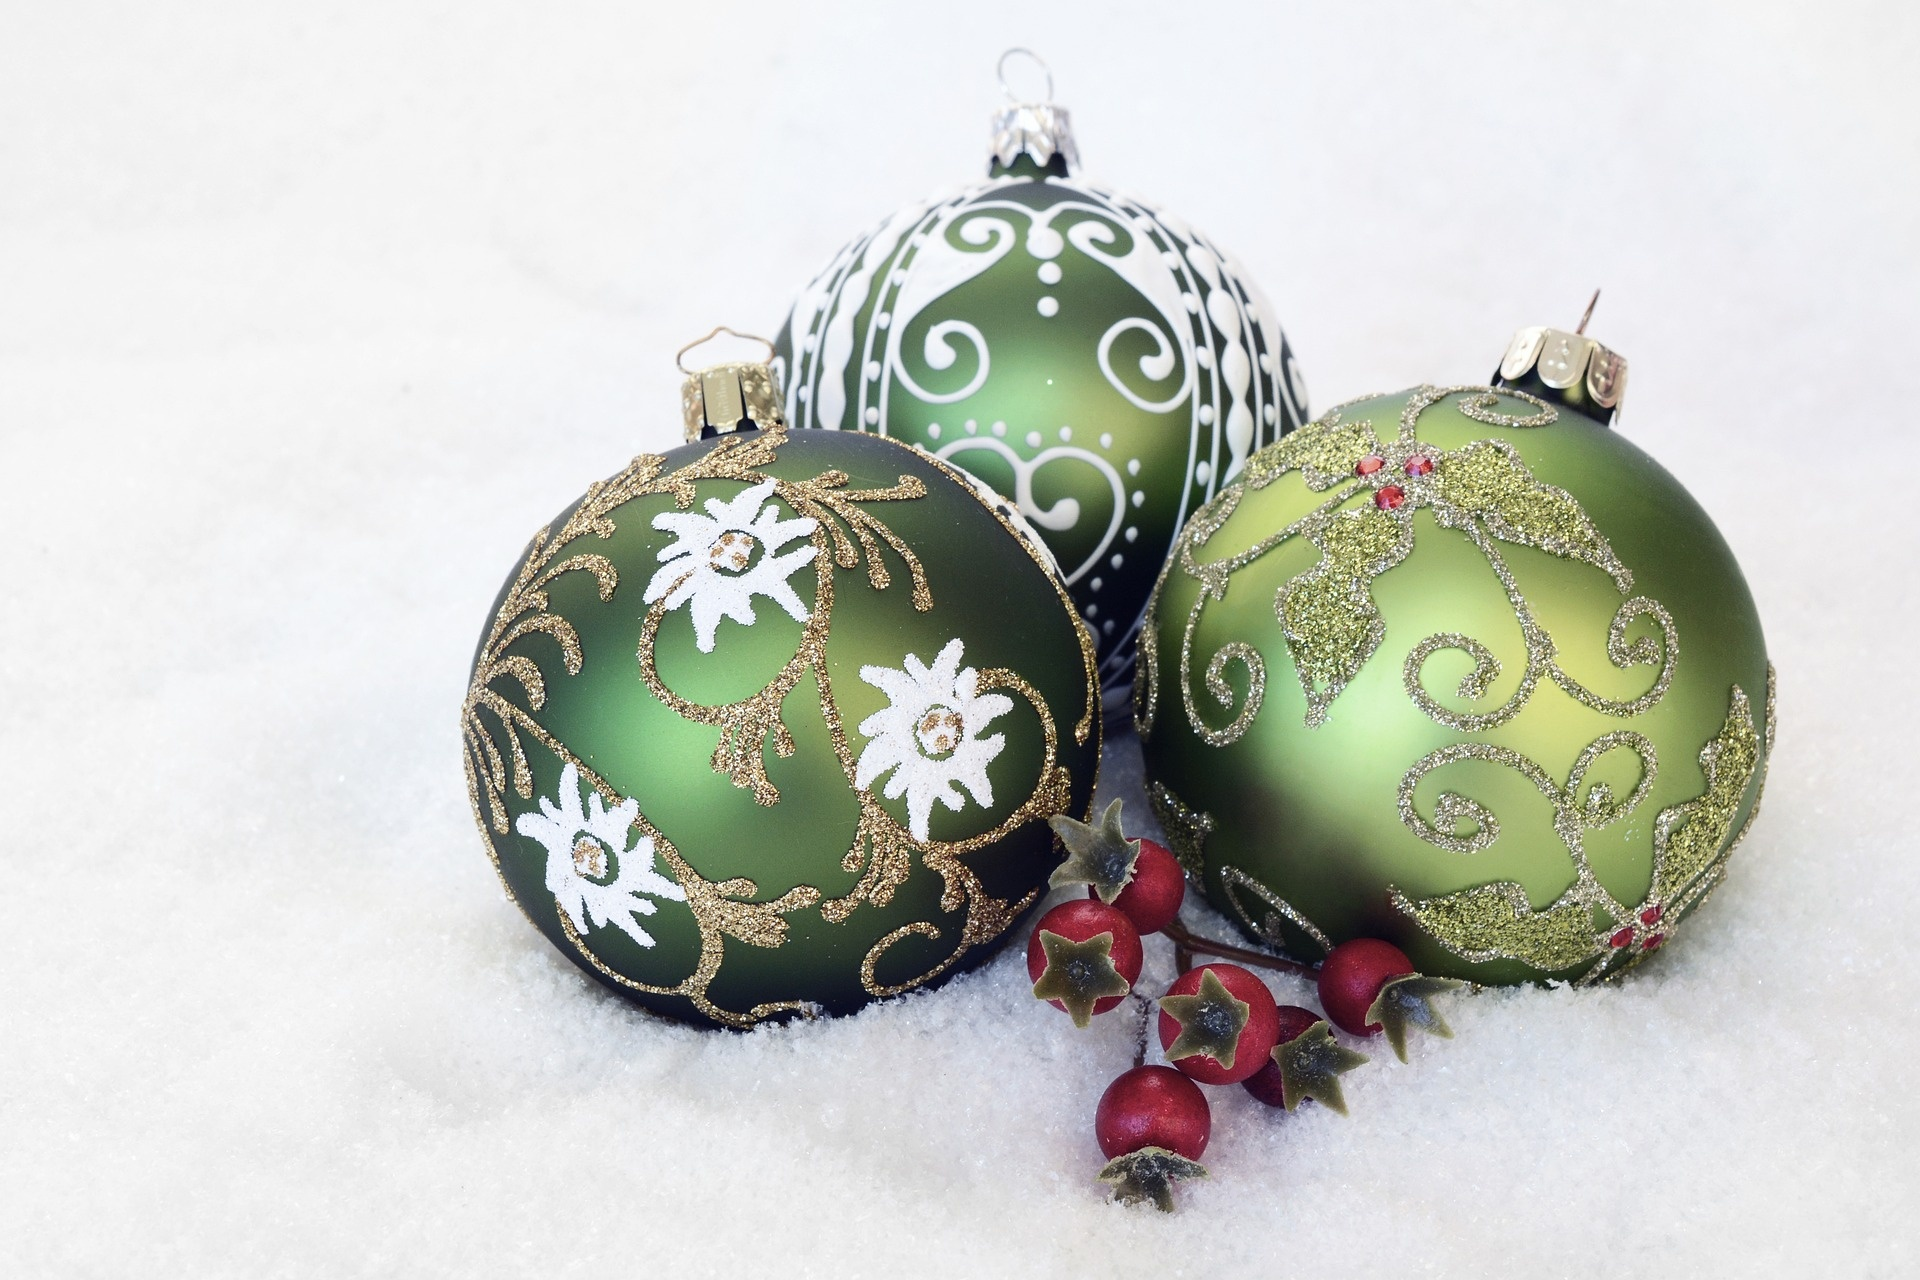 christmasbauble2956231_1920_03